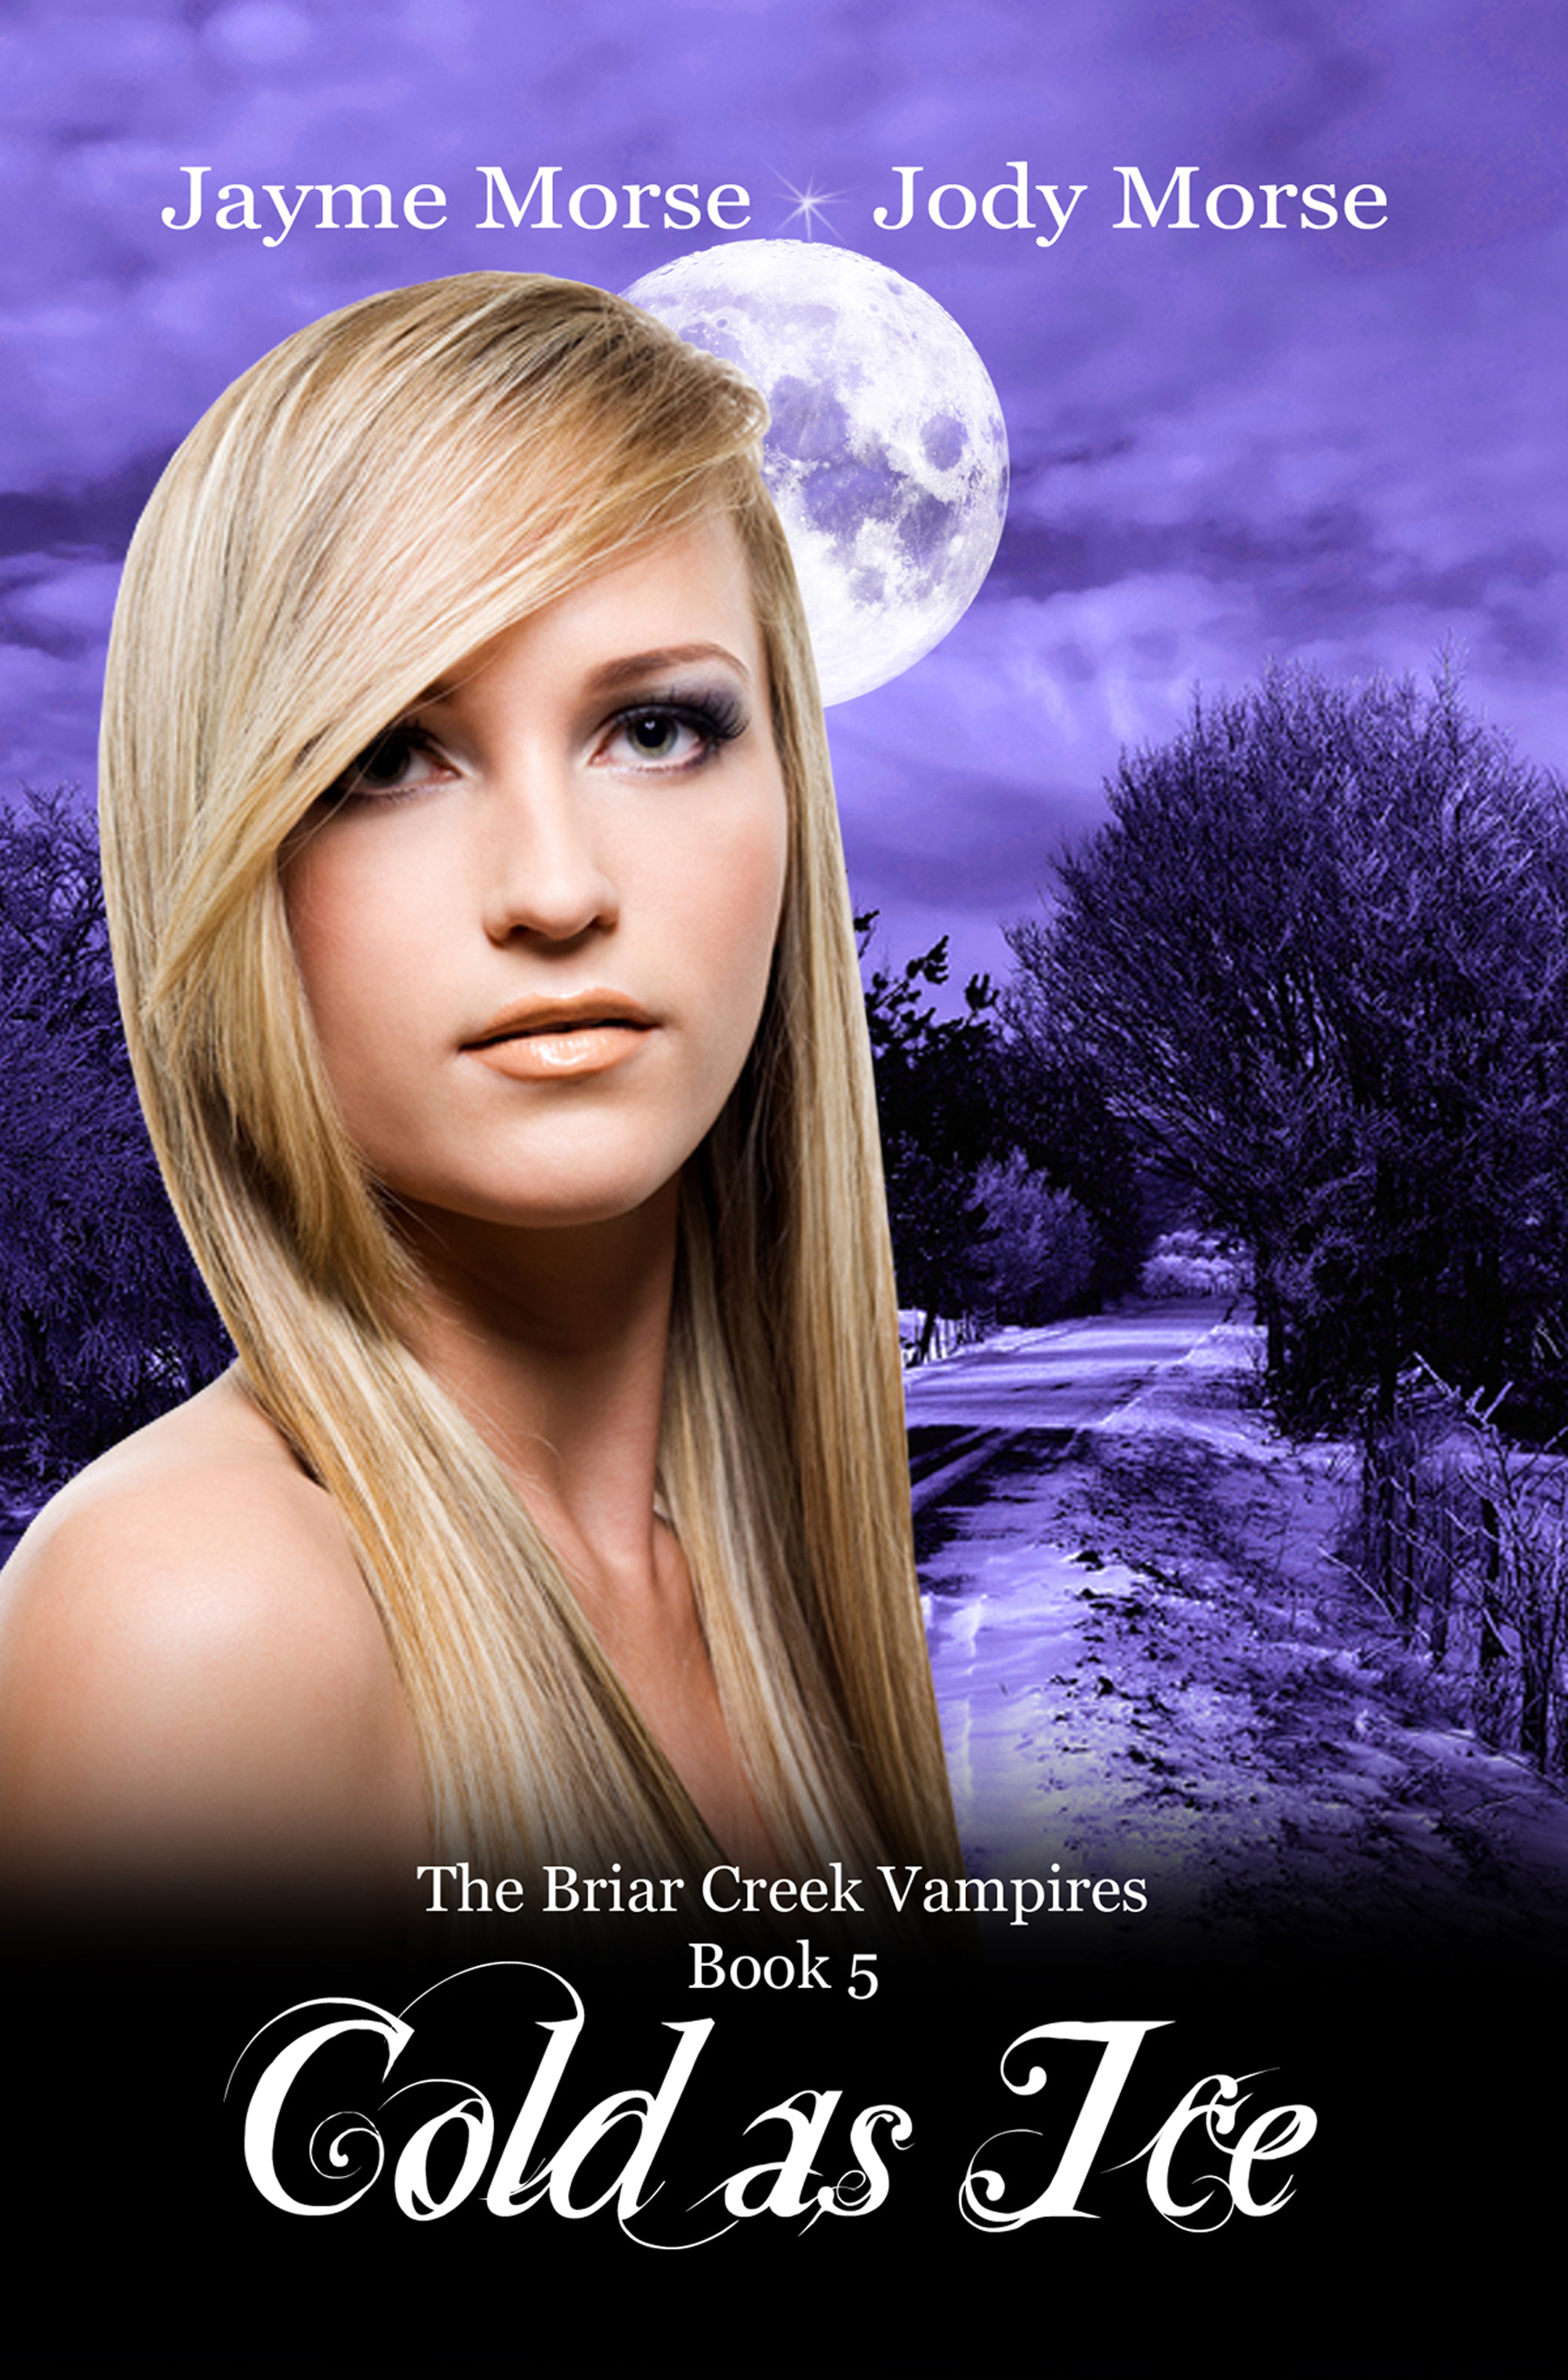 Cold as Ice (The Briar Creek Vampires, #5) by Jayme Morse & Jody Morse